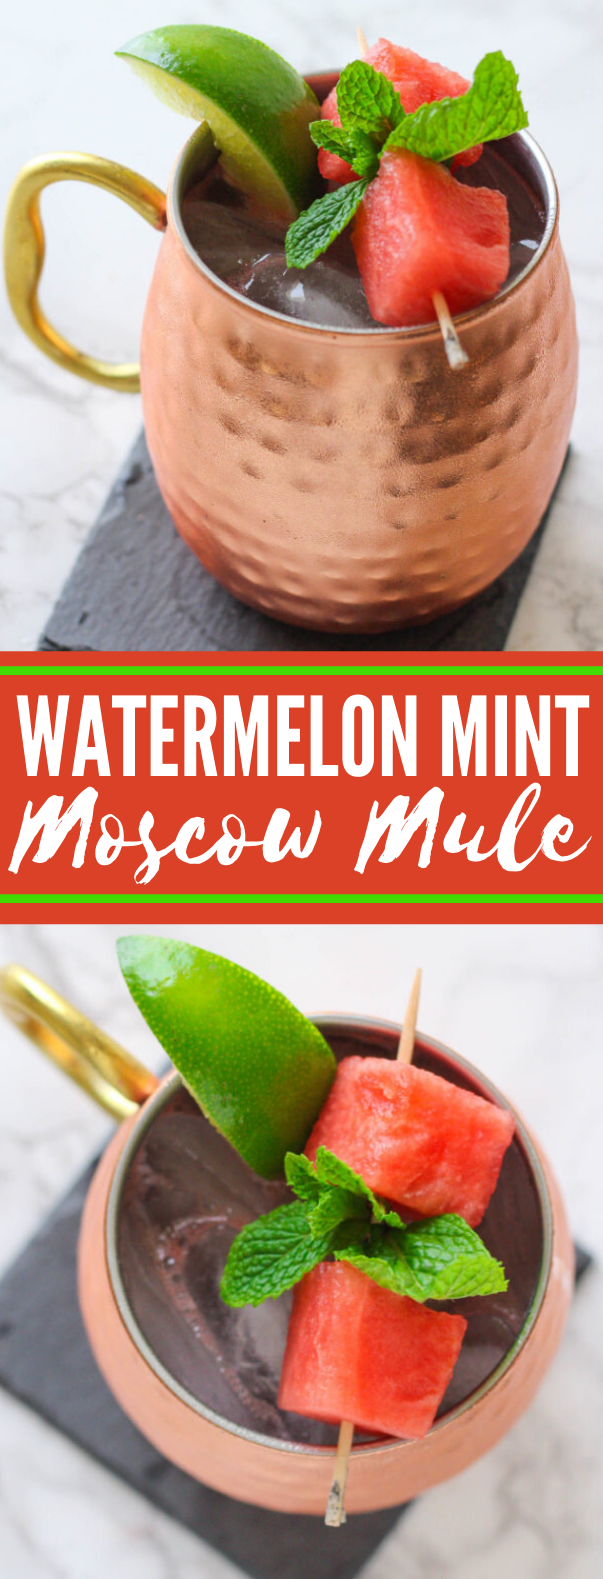 WATERMELON MINT MOSCOW MULE #drinks #cocktails